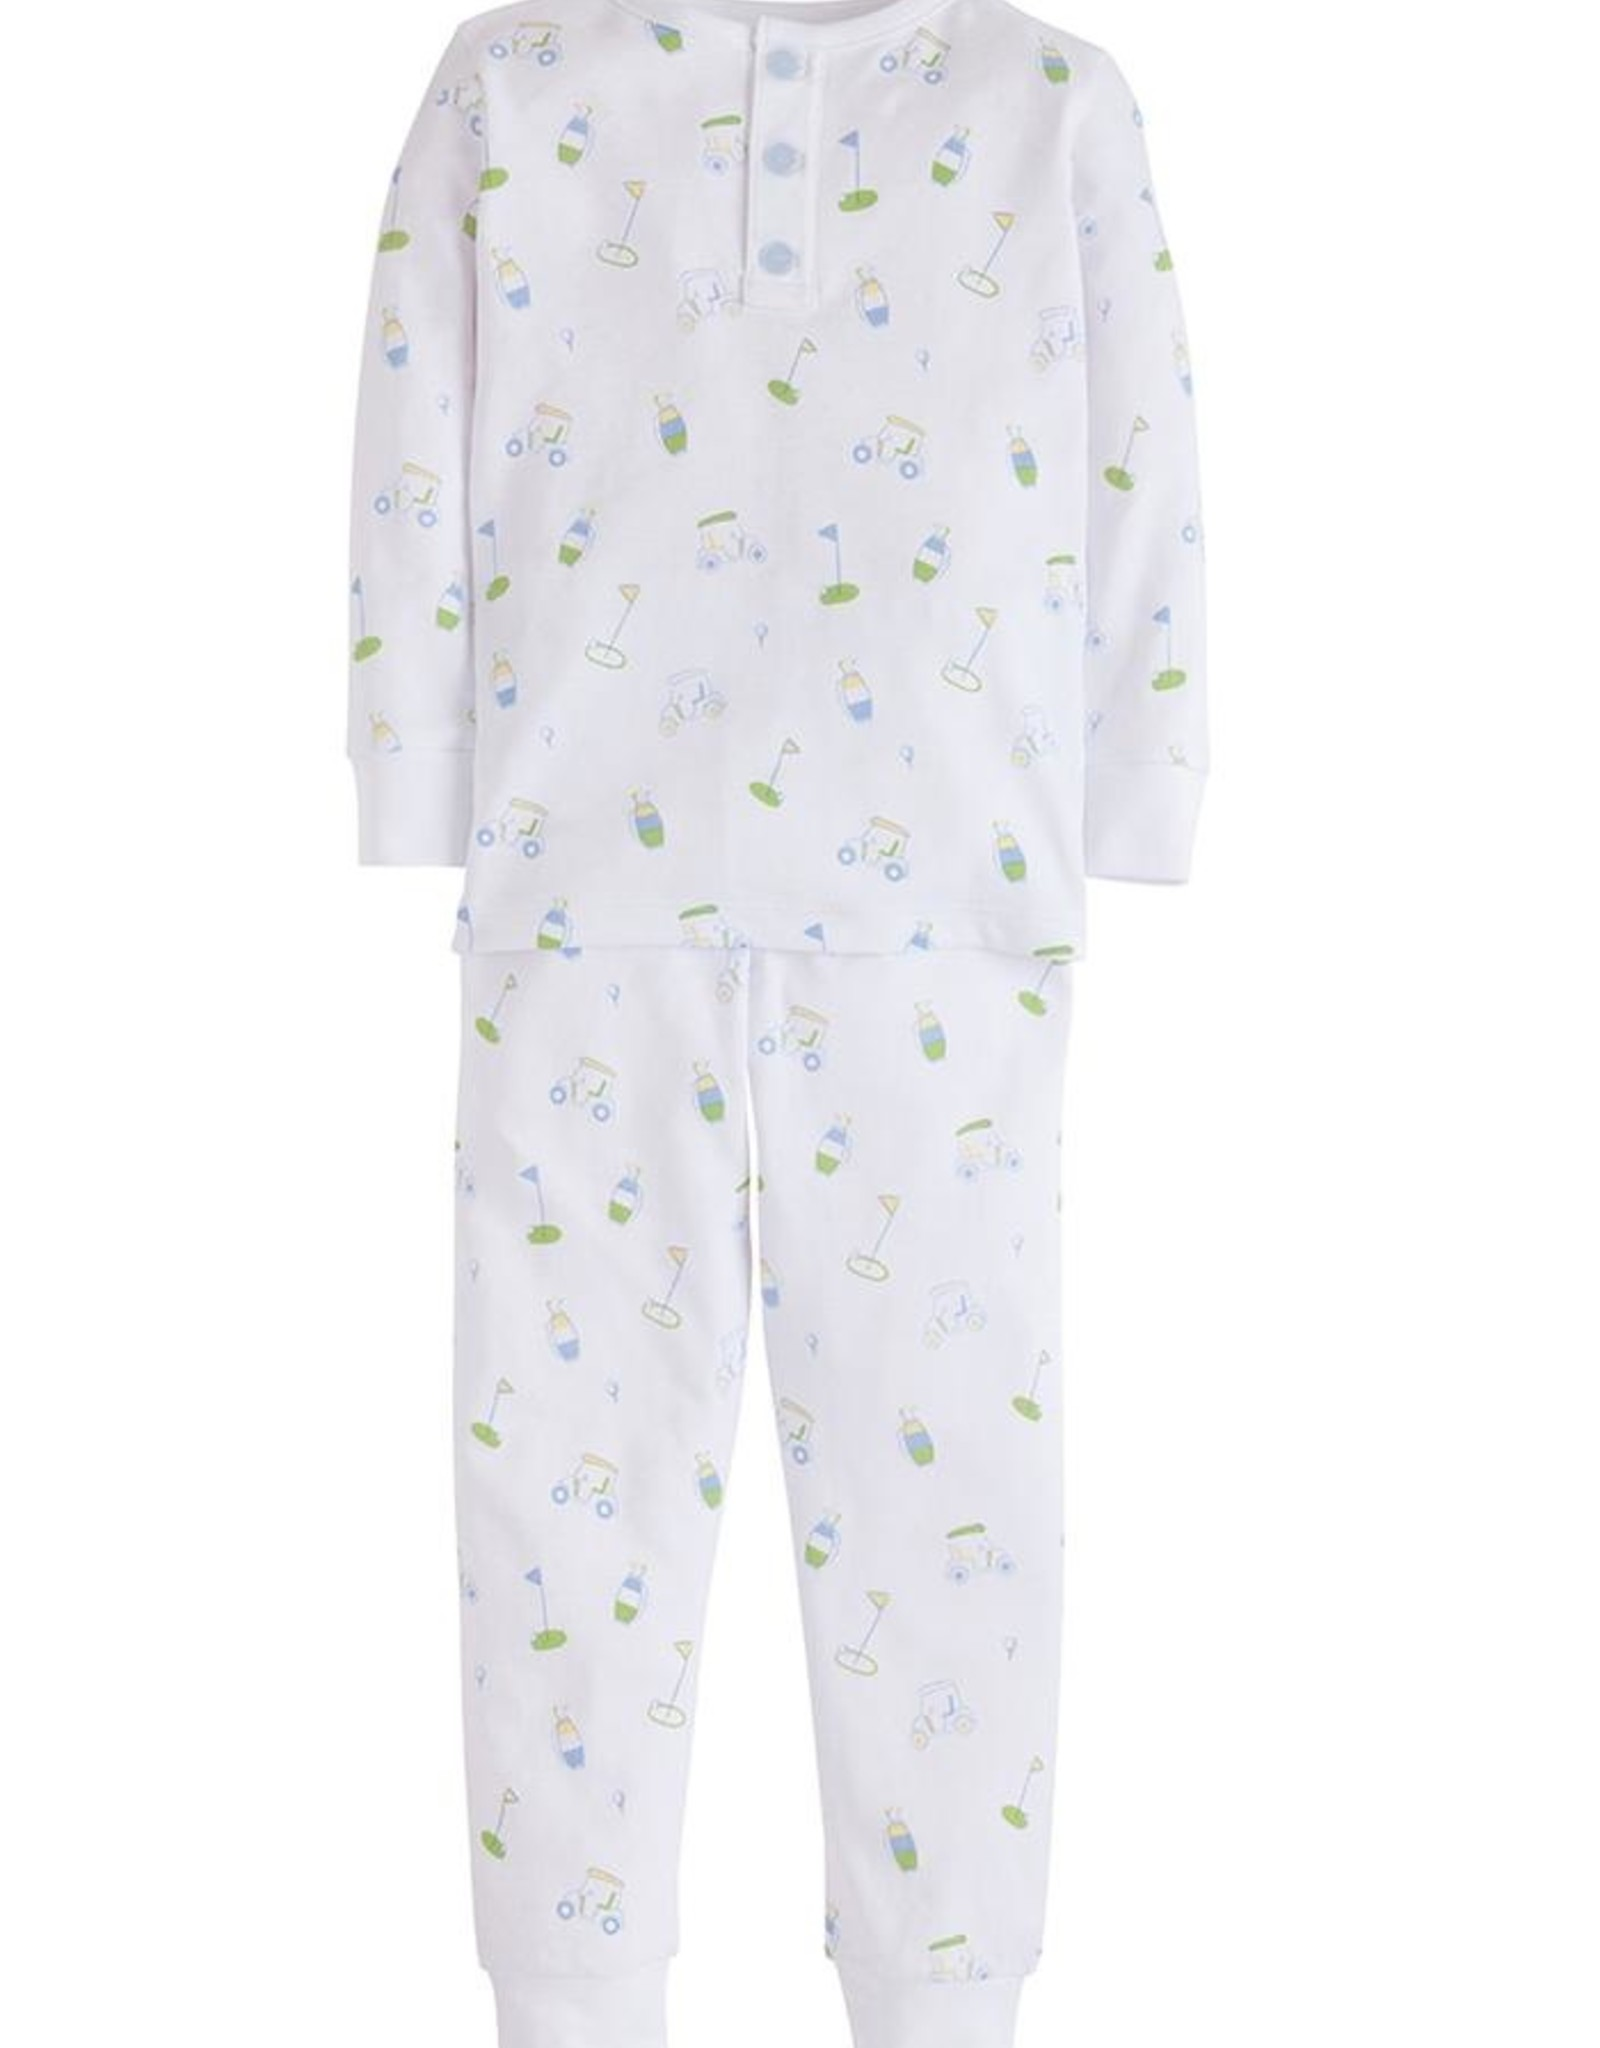 Little English Golf Printed Jammies